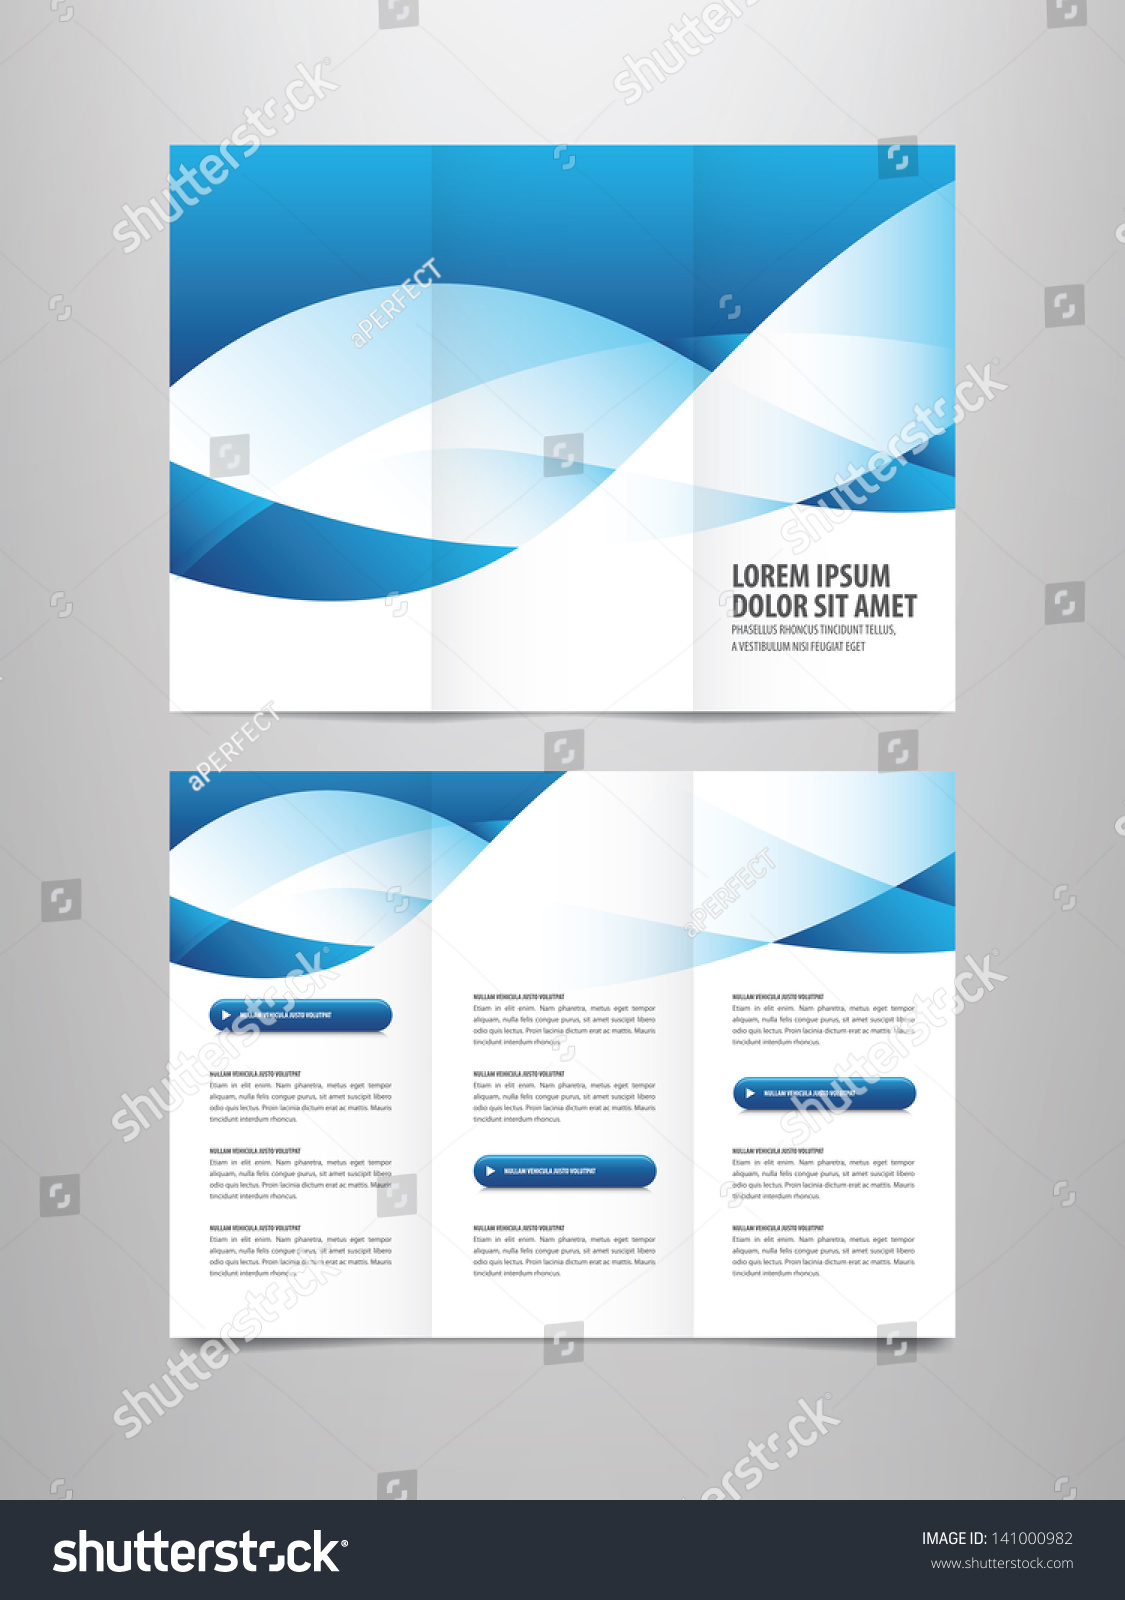 Tri fold business brochure template stock vector 141000982 tri fold business brochure template magicingreecefo Image collections